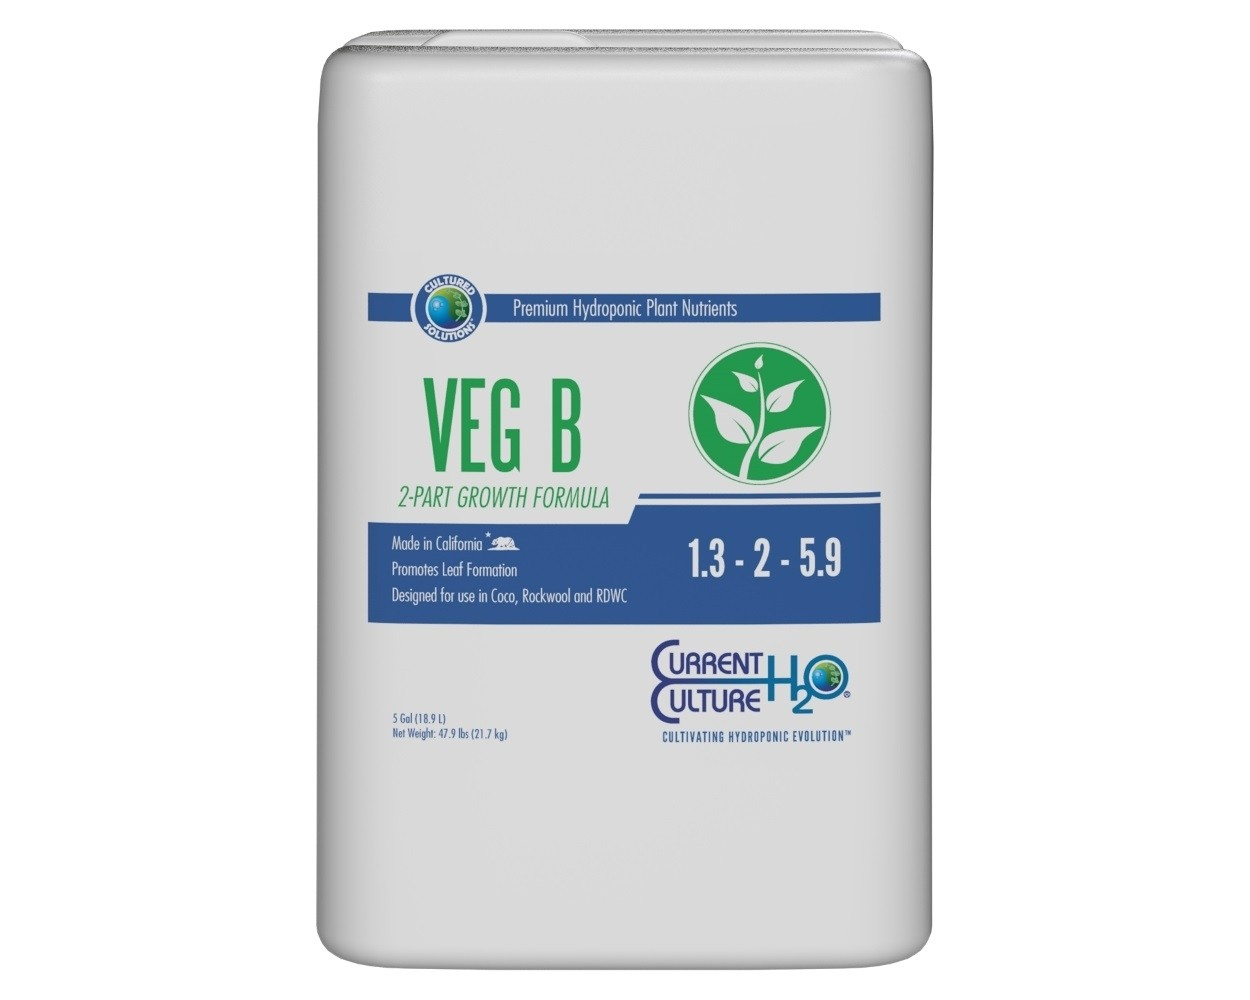 CURRENT CULTURE CULTURED SOLUTIONS VEG B 5 GALLON